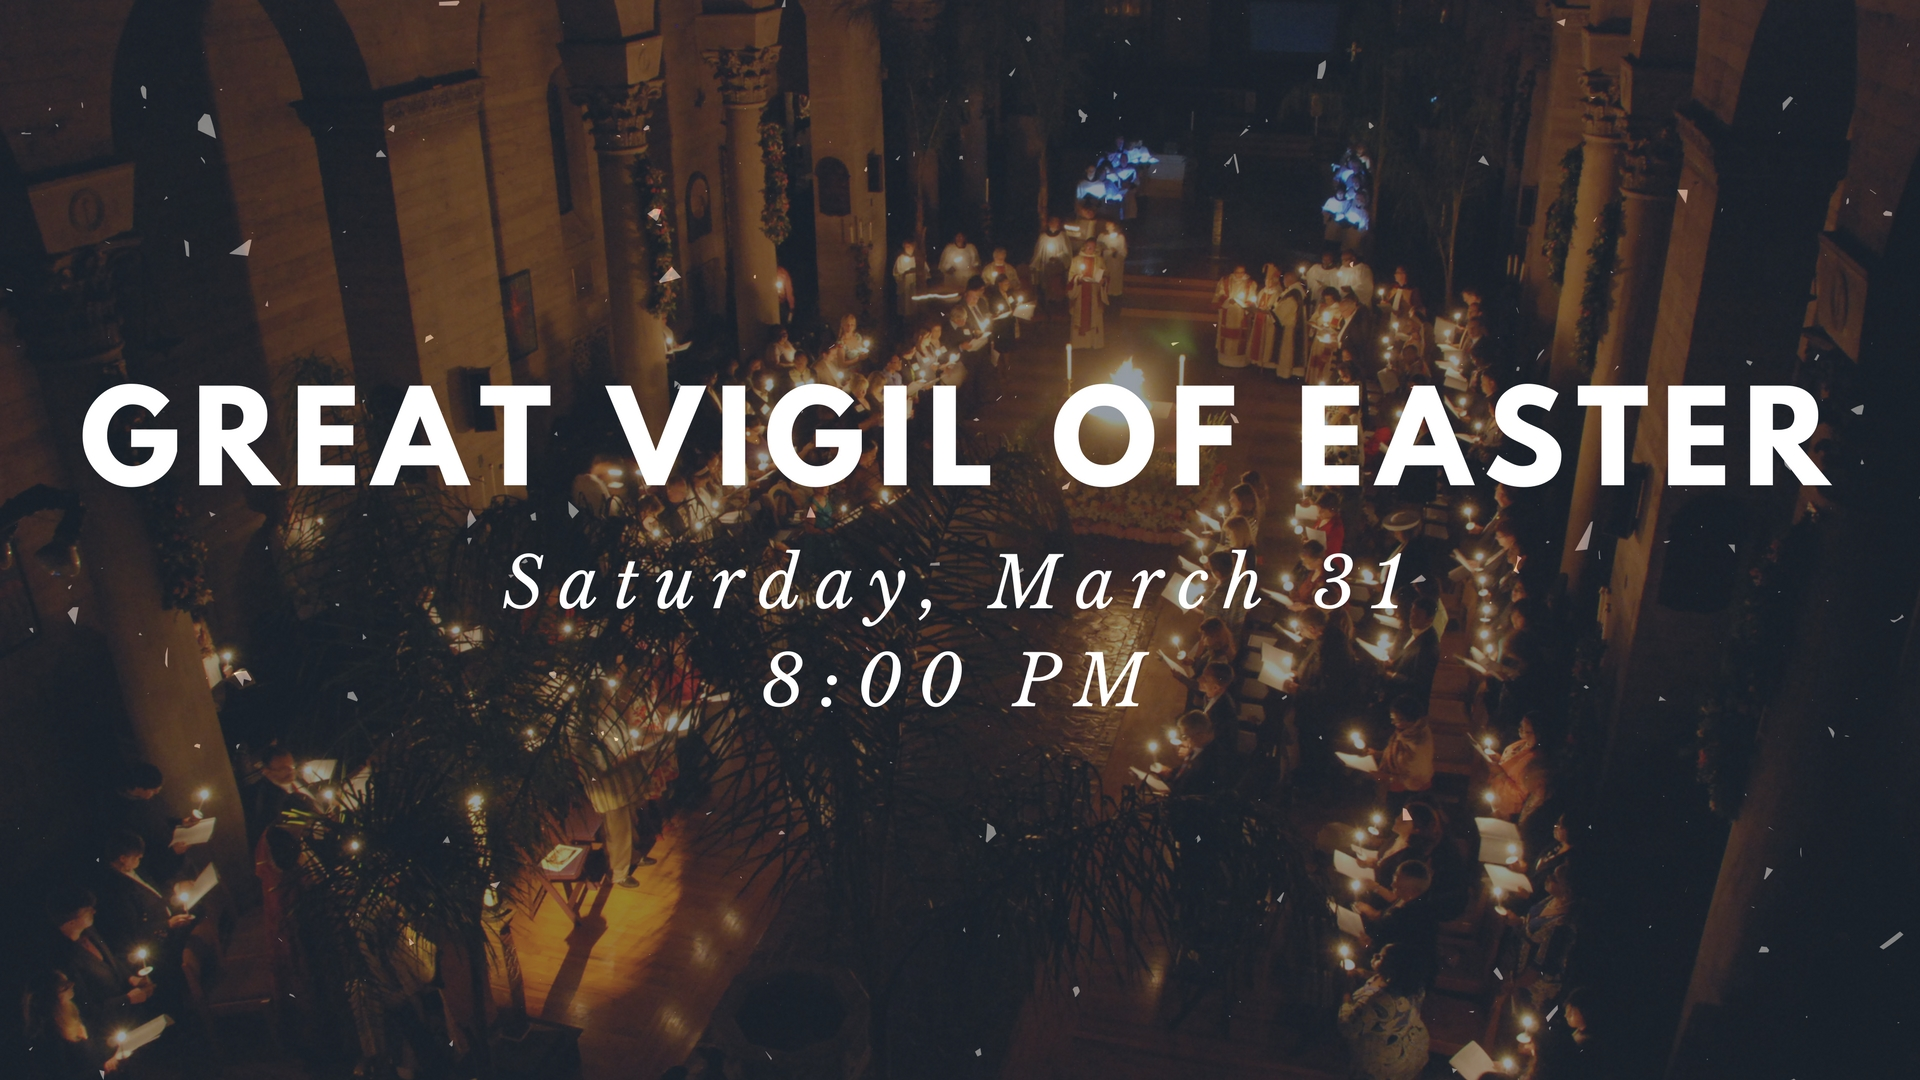 Great Vigil of Easter